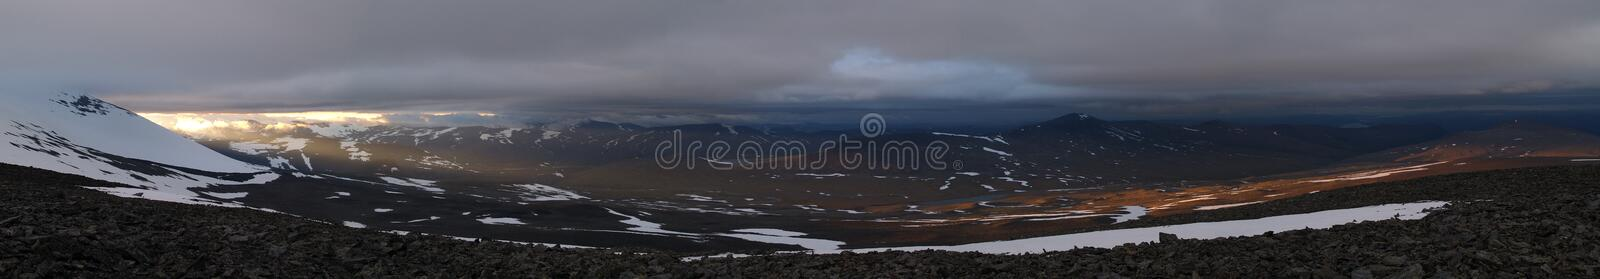 Panorama of midnight sun shinig over the mountains royalty free stock image